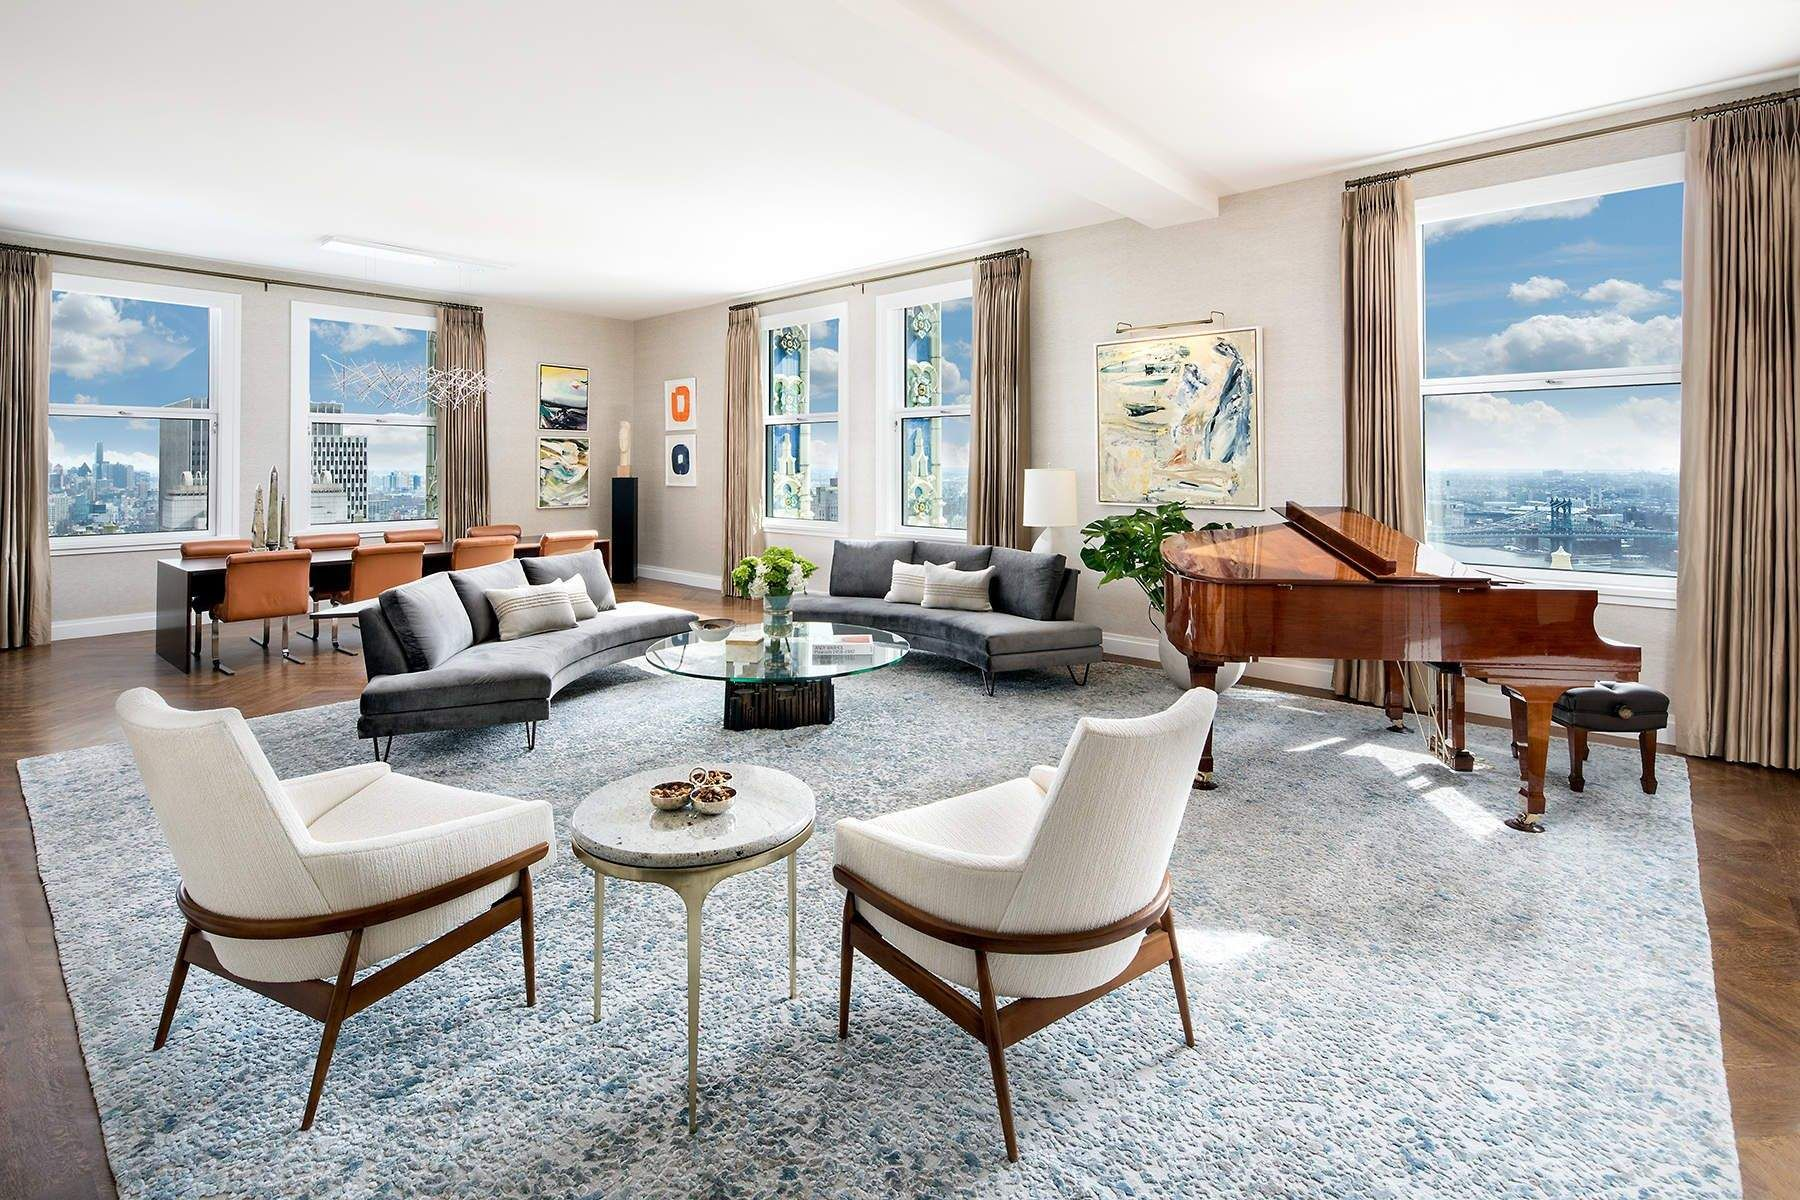 condominiums for Sale at Woolworth Tower Residences - 34A 2 Park Place Apt 34A New York, New York 10007 United States